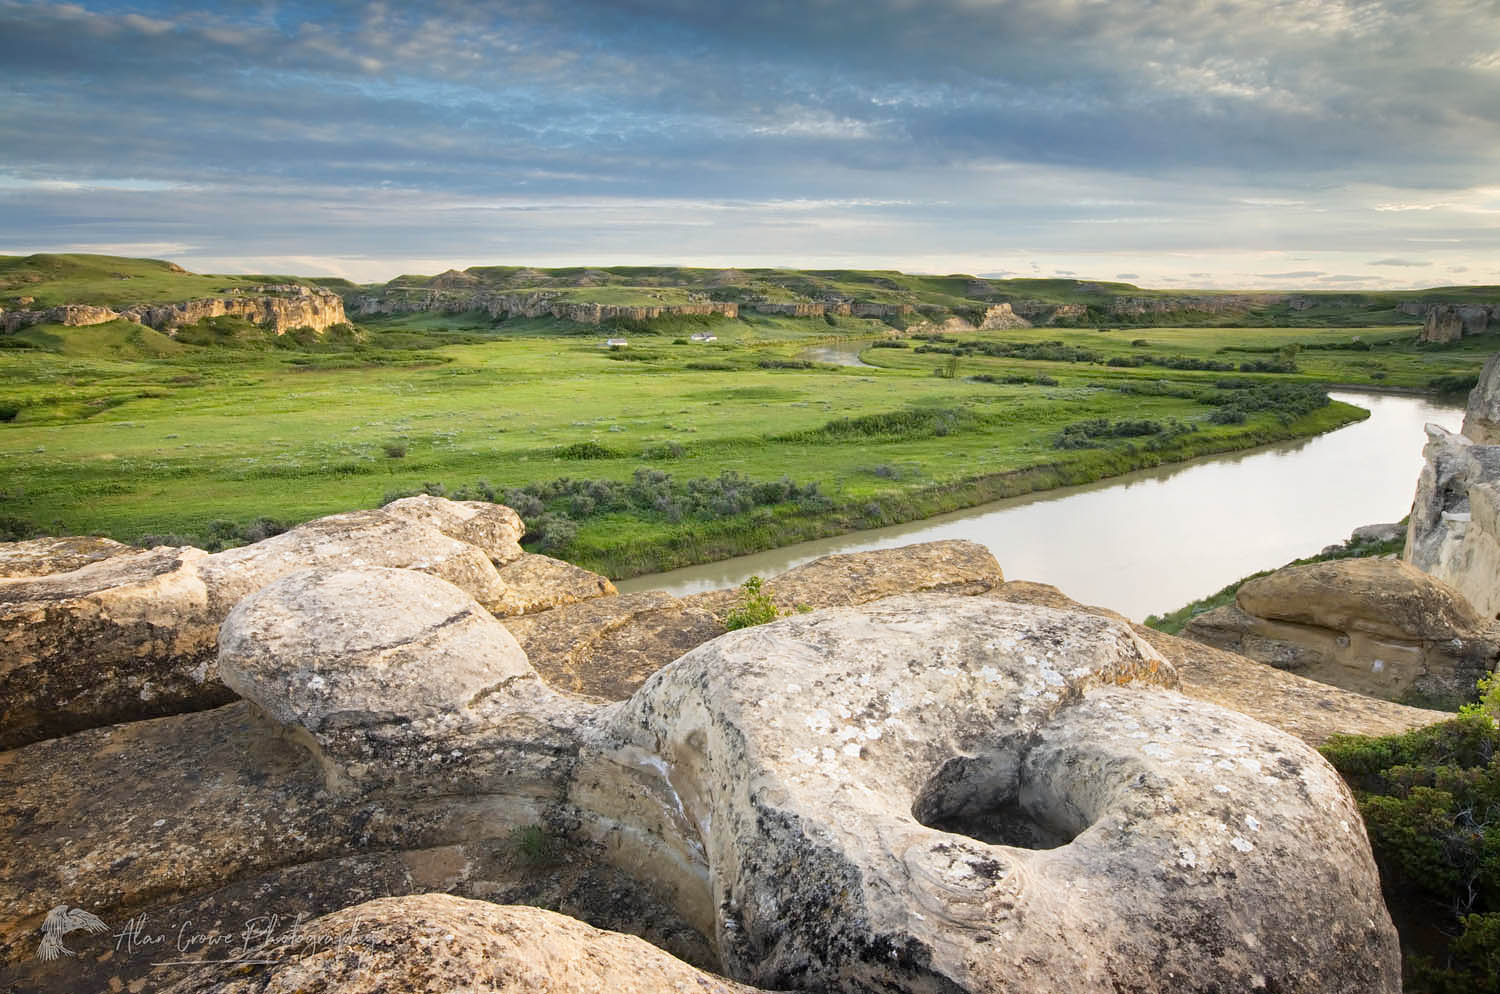 Writing on Stone Provincial Park Alberta